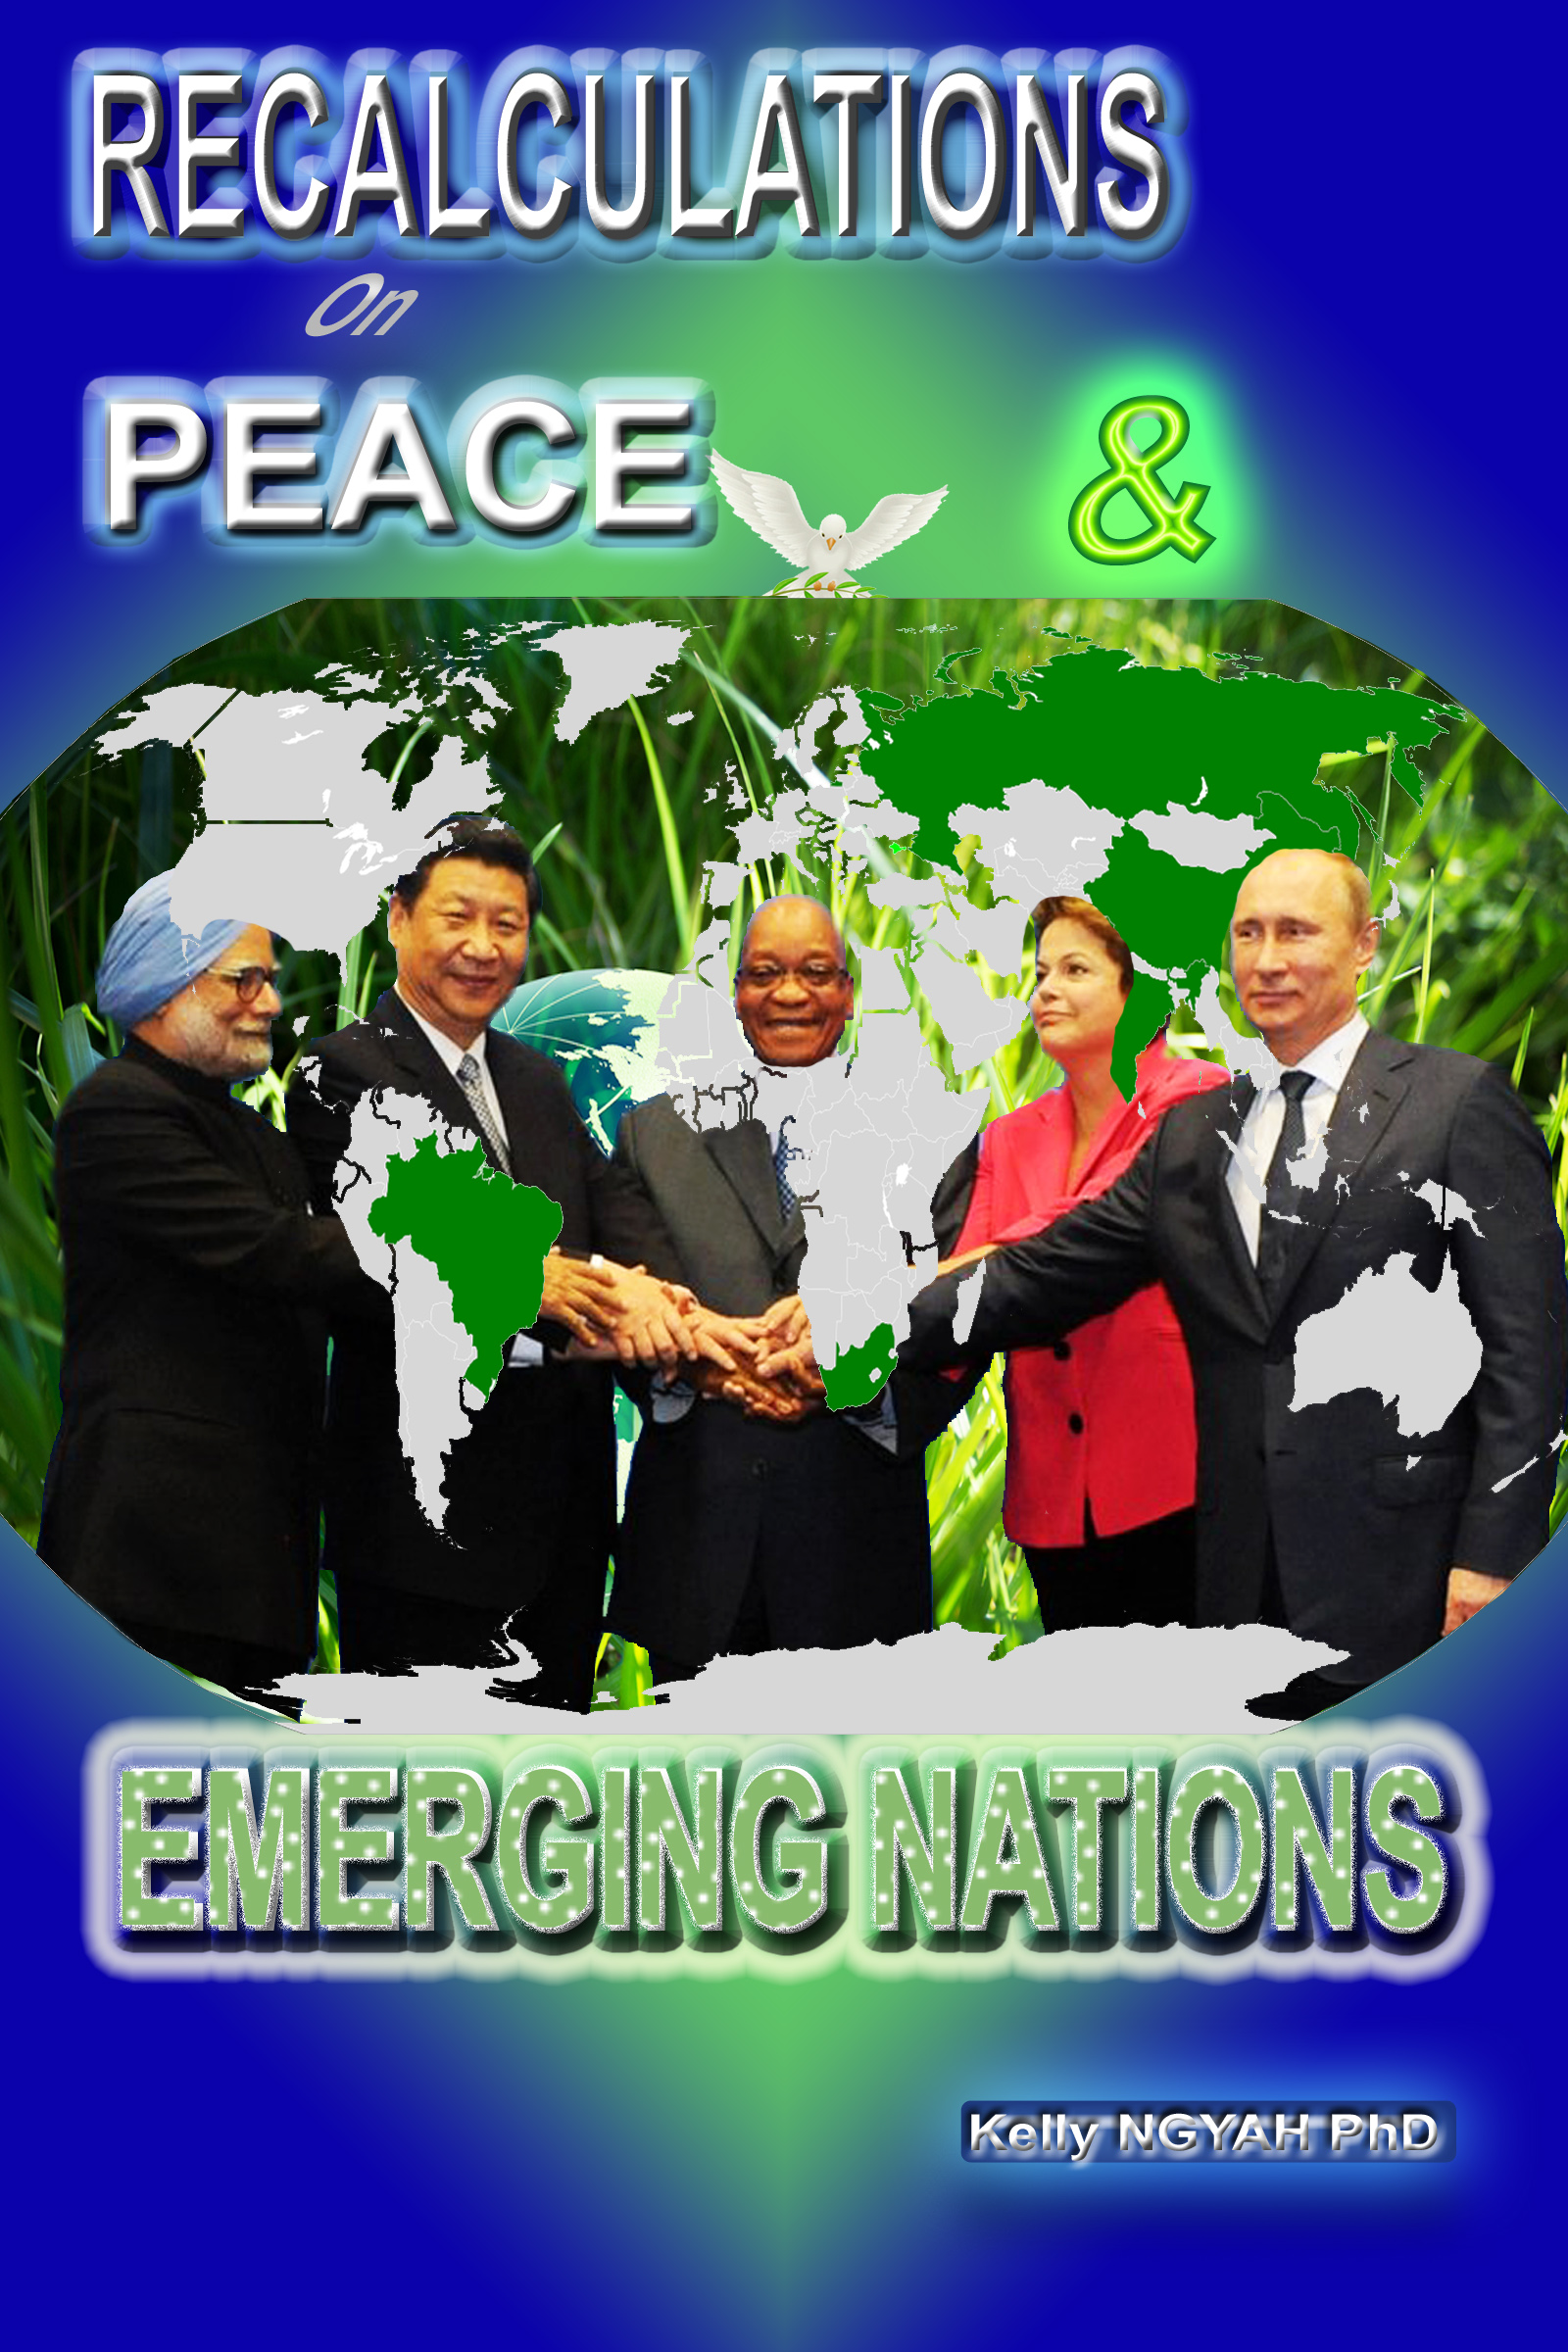 Recalculations on Peace and Emerging Nations'